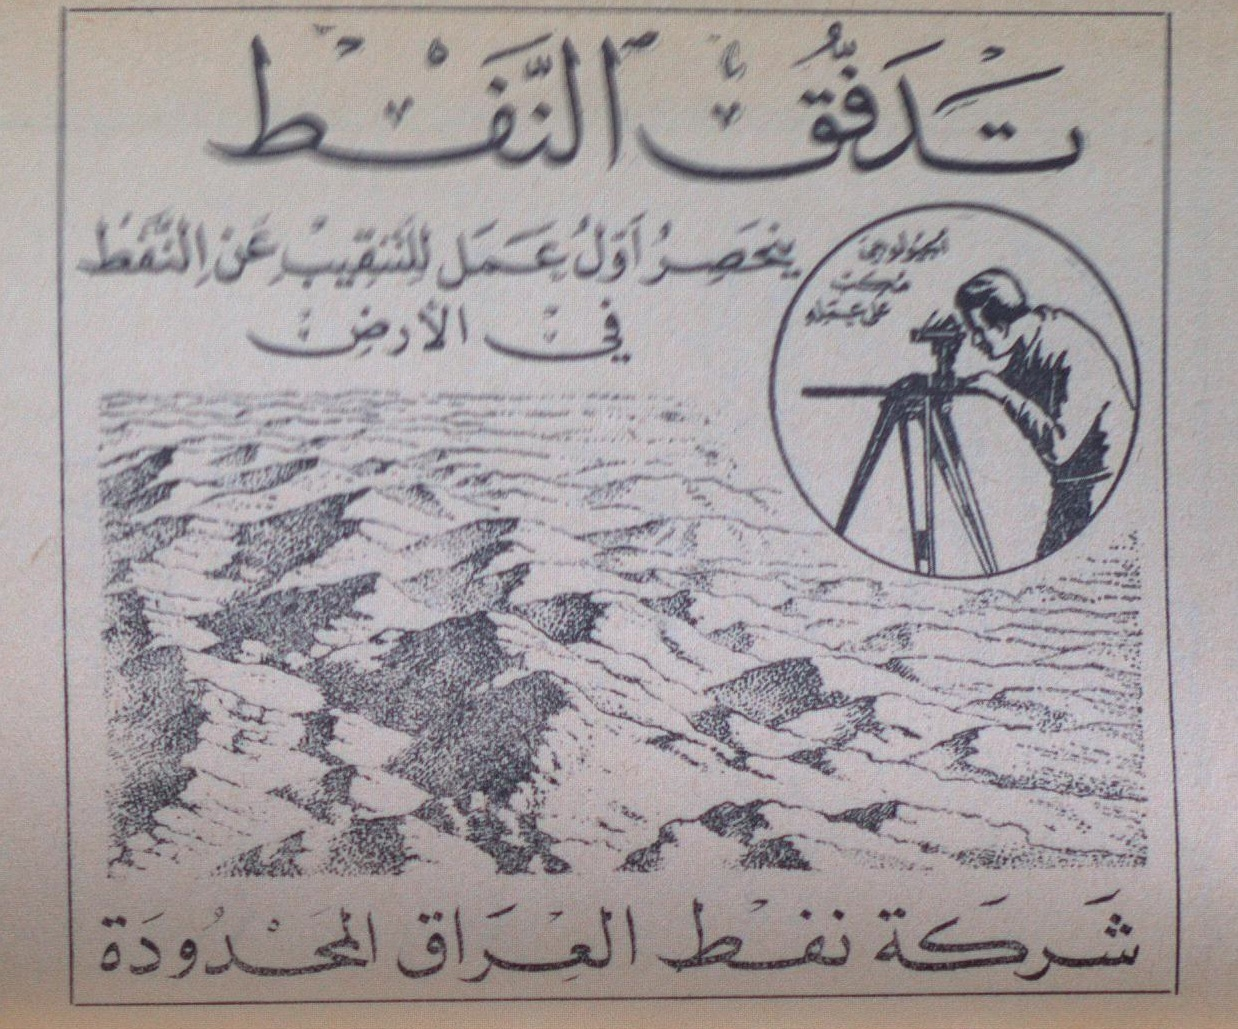 Iraq Petroleum Company, Ltd (Shi'r, 1958)